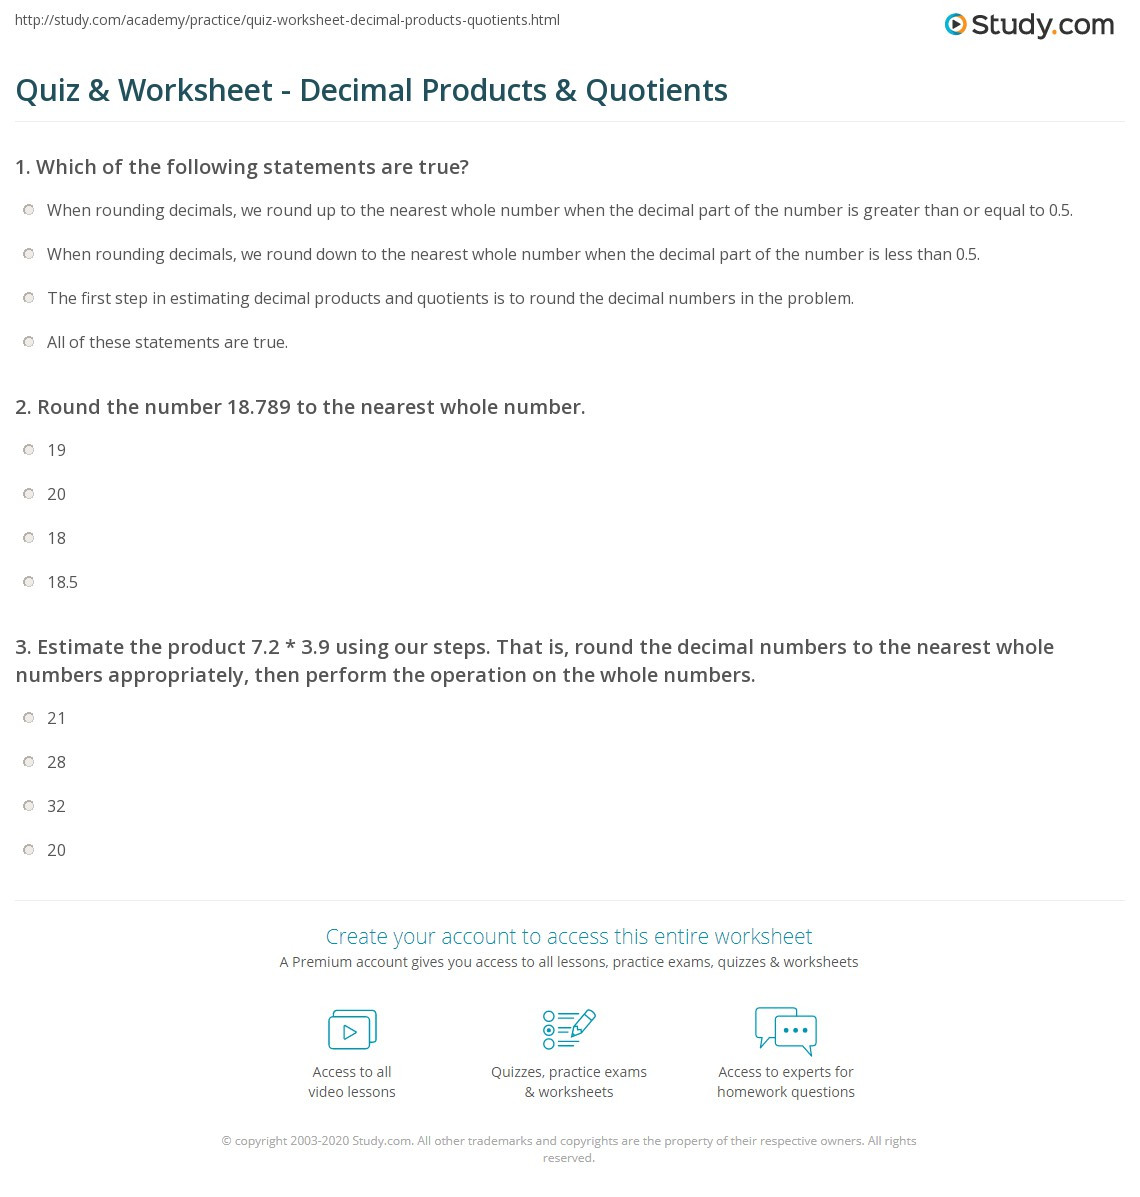 Estimating Quotients Worksheets 5th Grade Estimating Decimal Products Worksheet